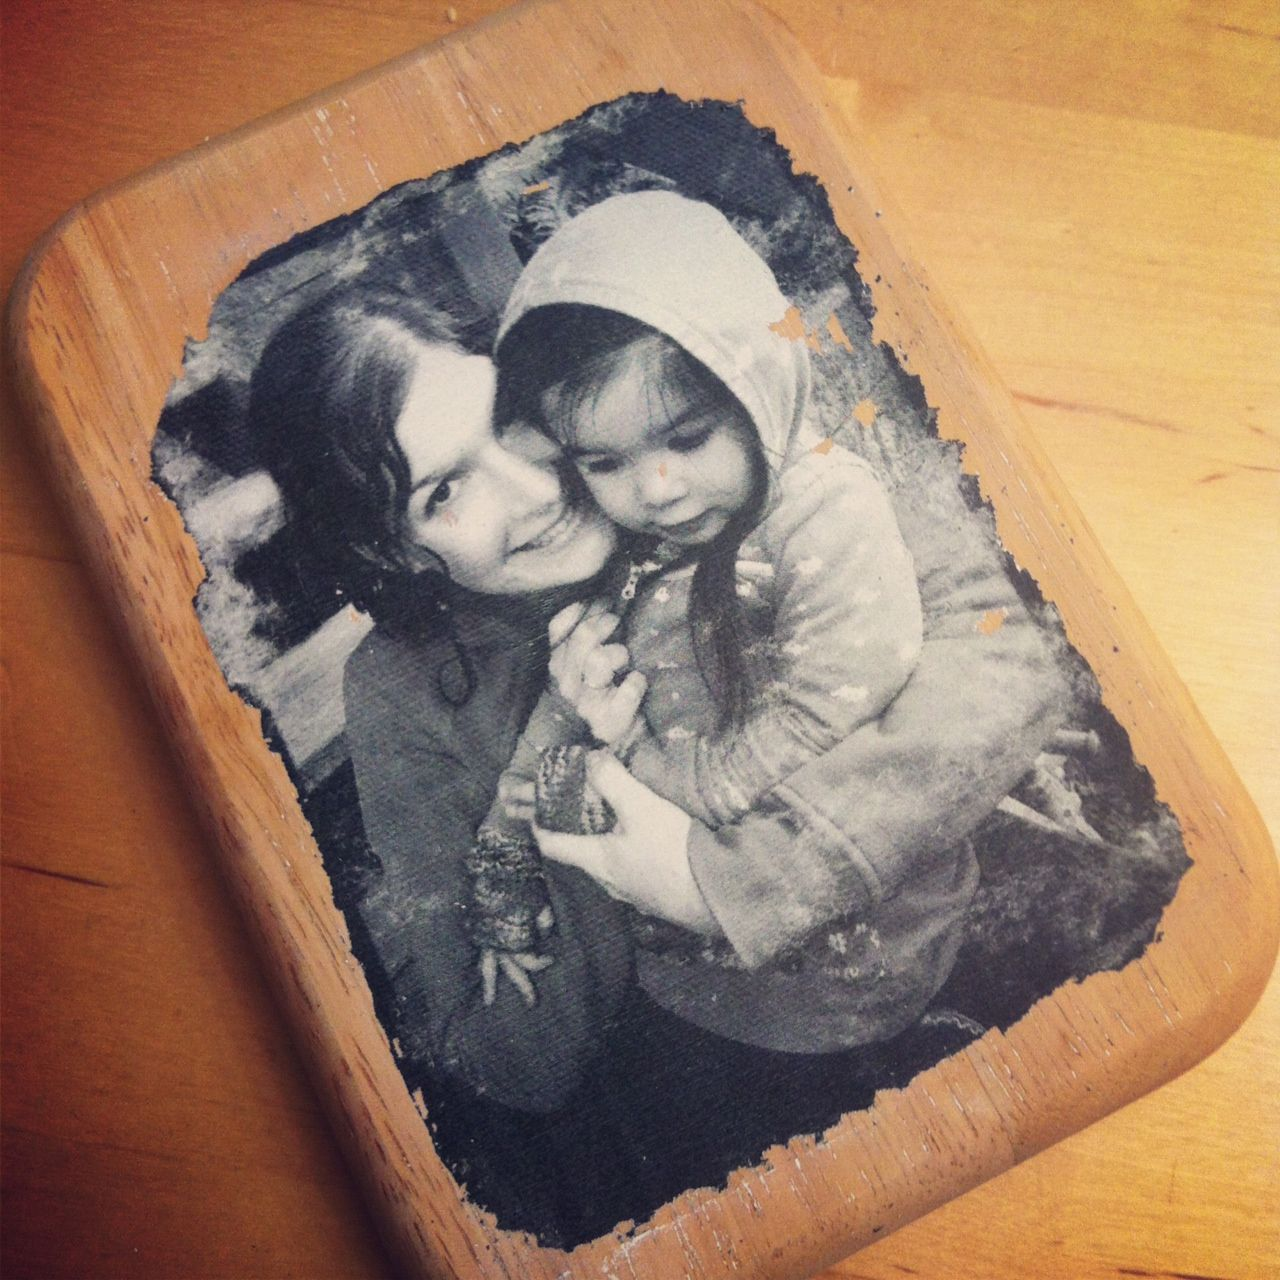 Photo To Wood Transfer Tutorial With Step By Step Photos And Instructions Photo On Wood Wood Transfer Picture On Wood